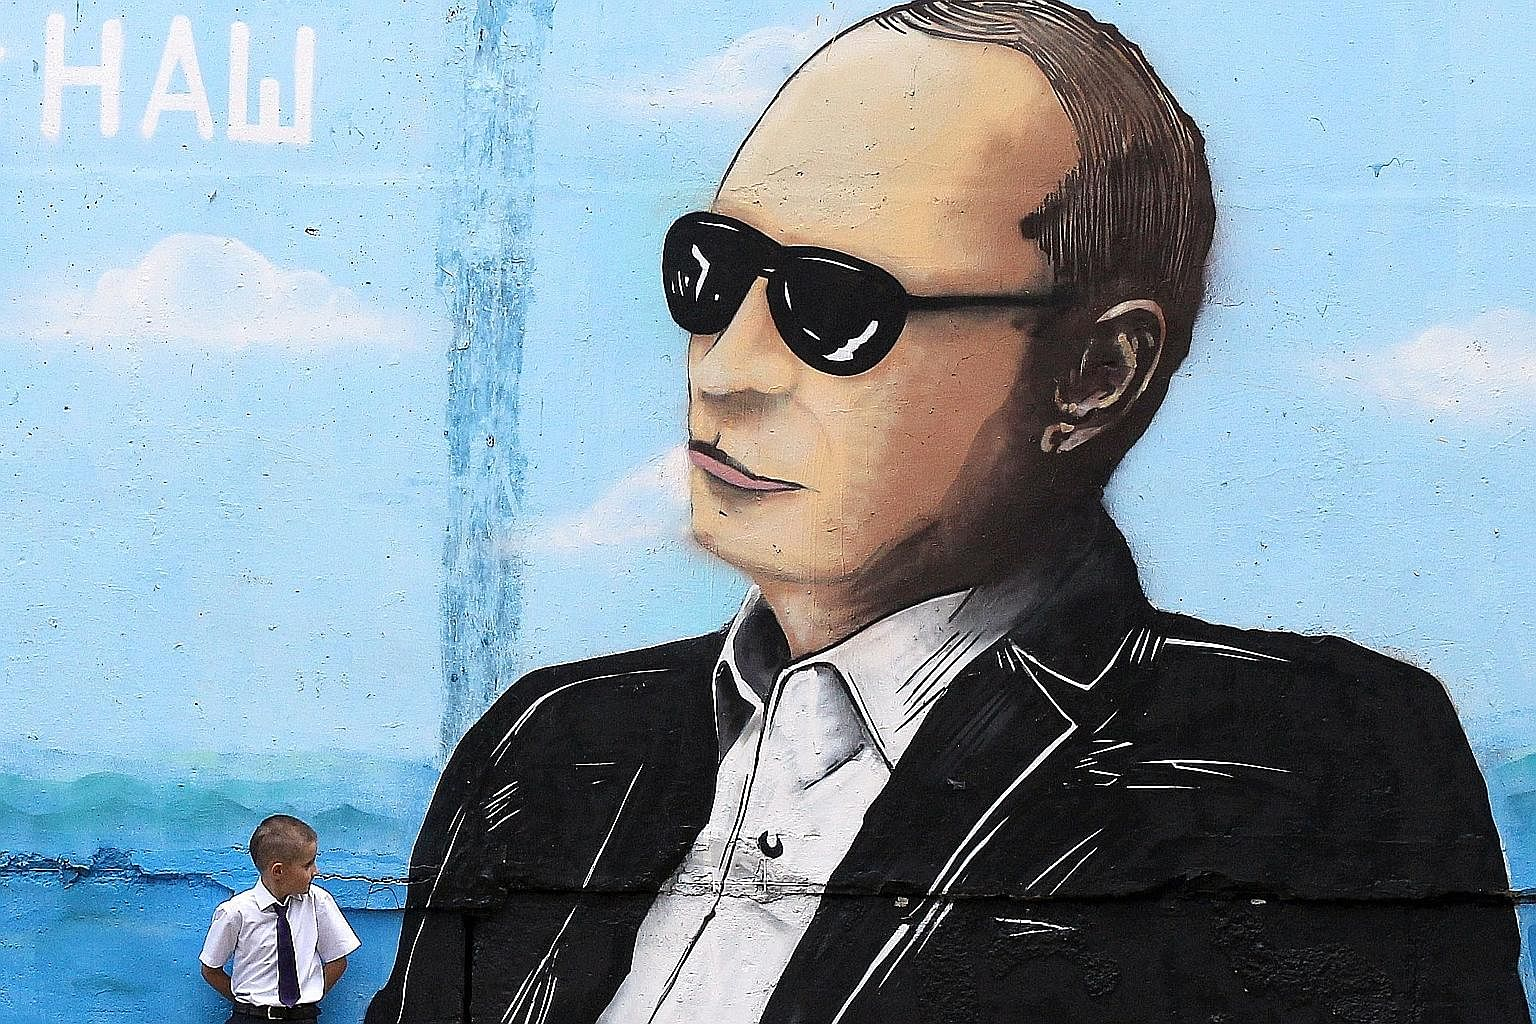 Russian leader Vladimir Putin's image on a wall in the Crimean city of Simferopol. A rapprochement on Syria would risk undermining the West's Ukraine-related sanctions, and provide Mr Putin with tacit recognition of Russia's annexation of Crimea and